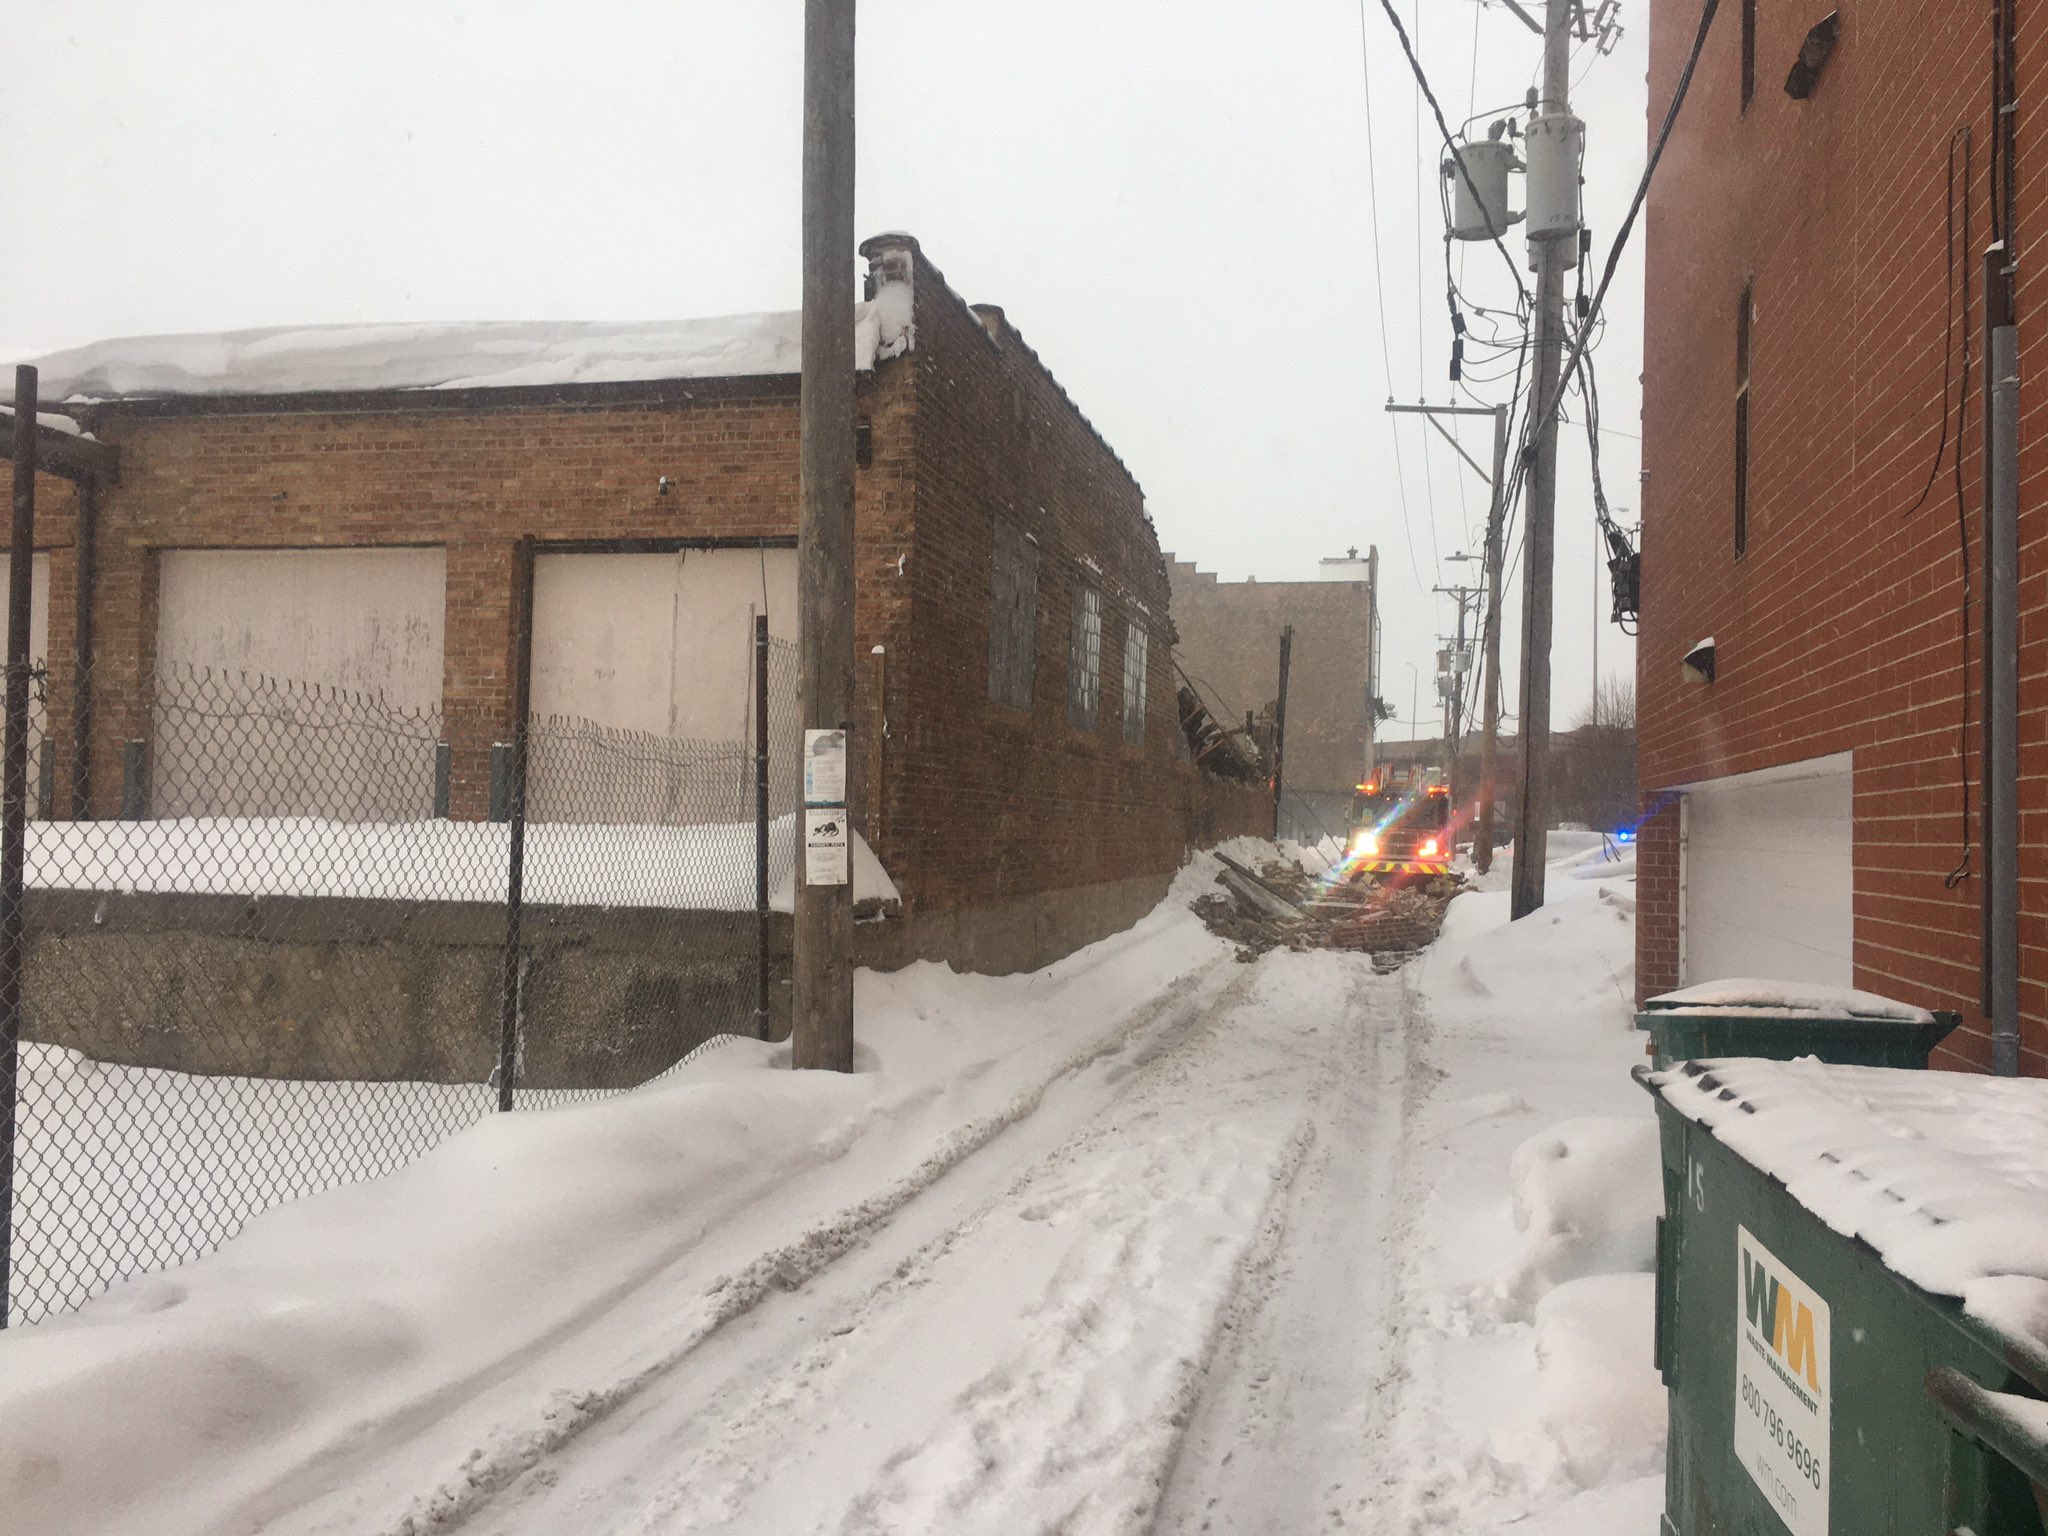 Fire crews responded to a vacant building collapse Feb. 15, 2021 in Bridgeport.